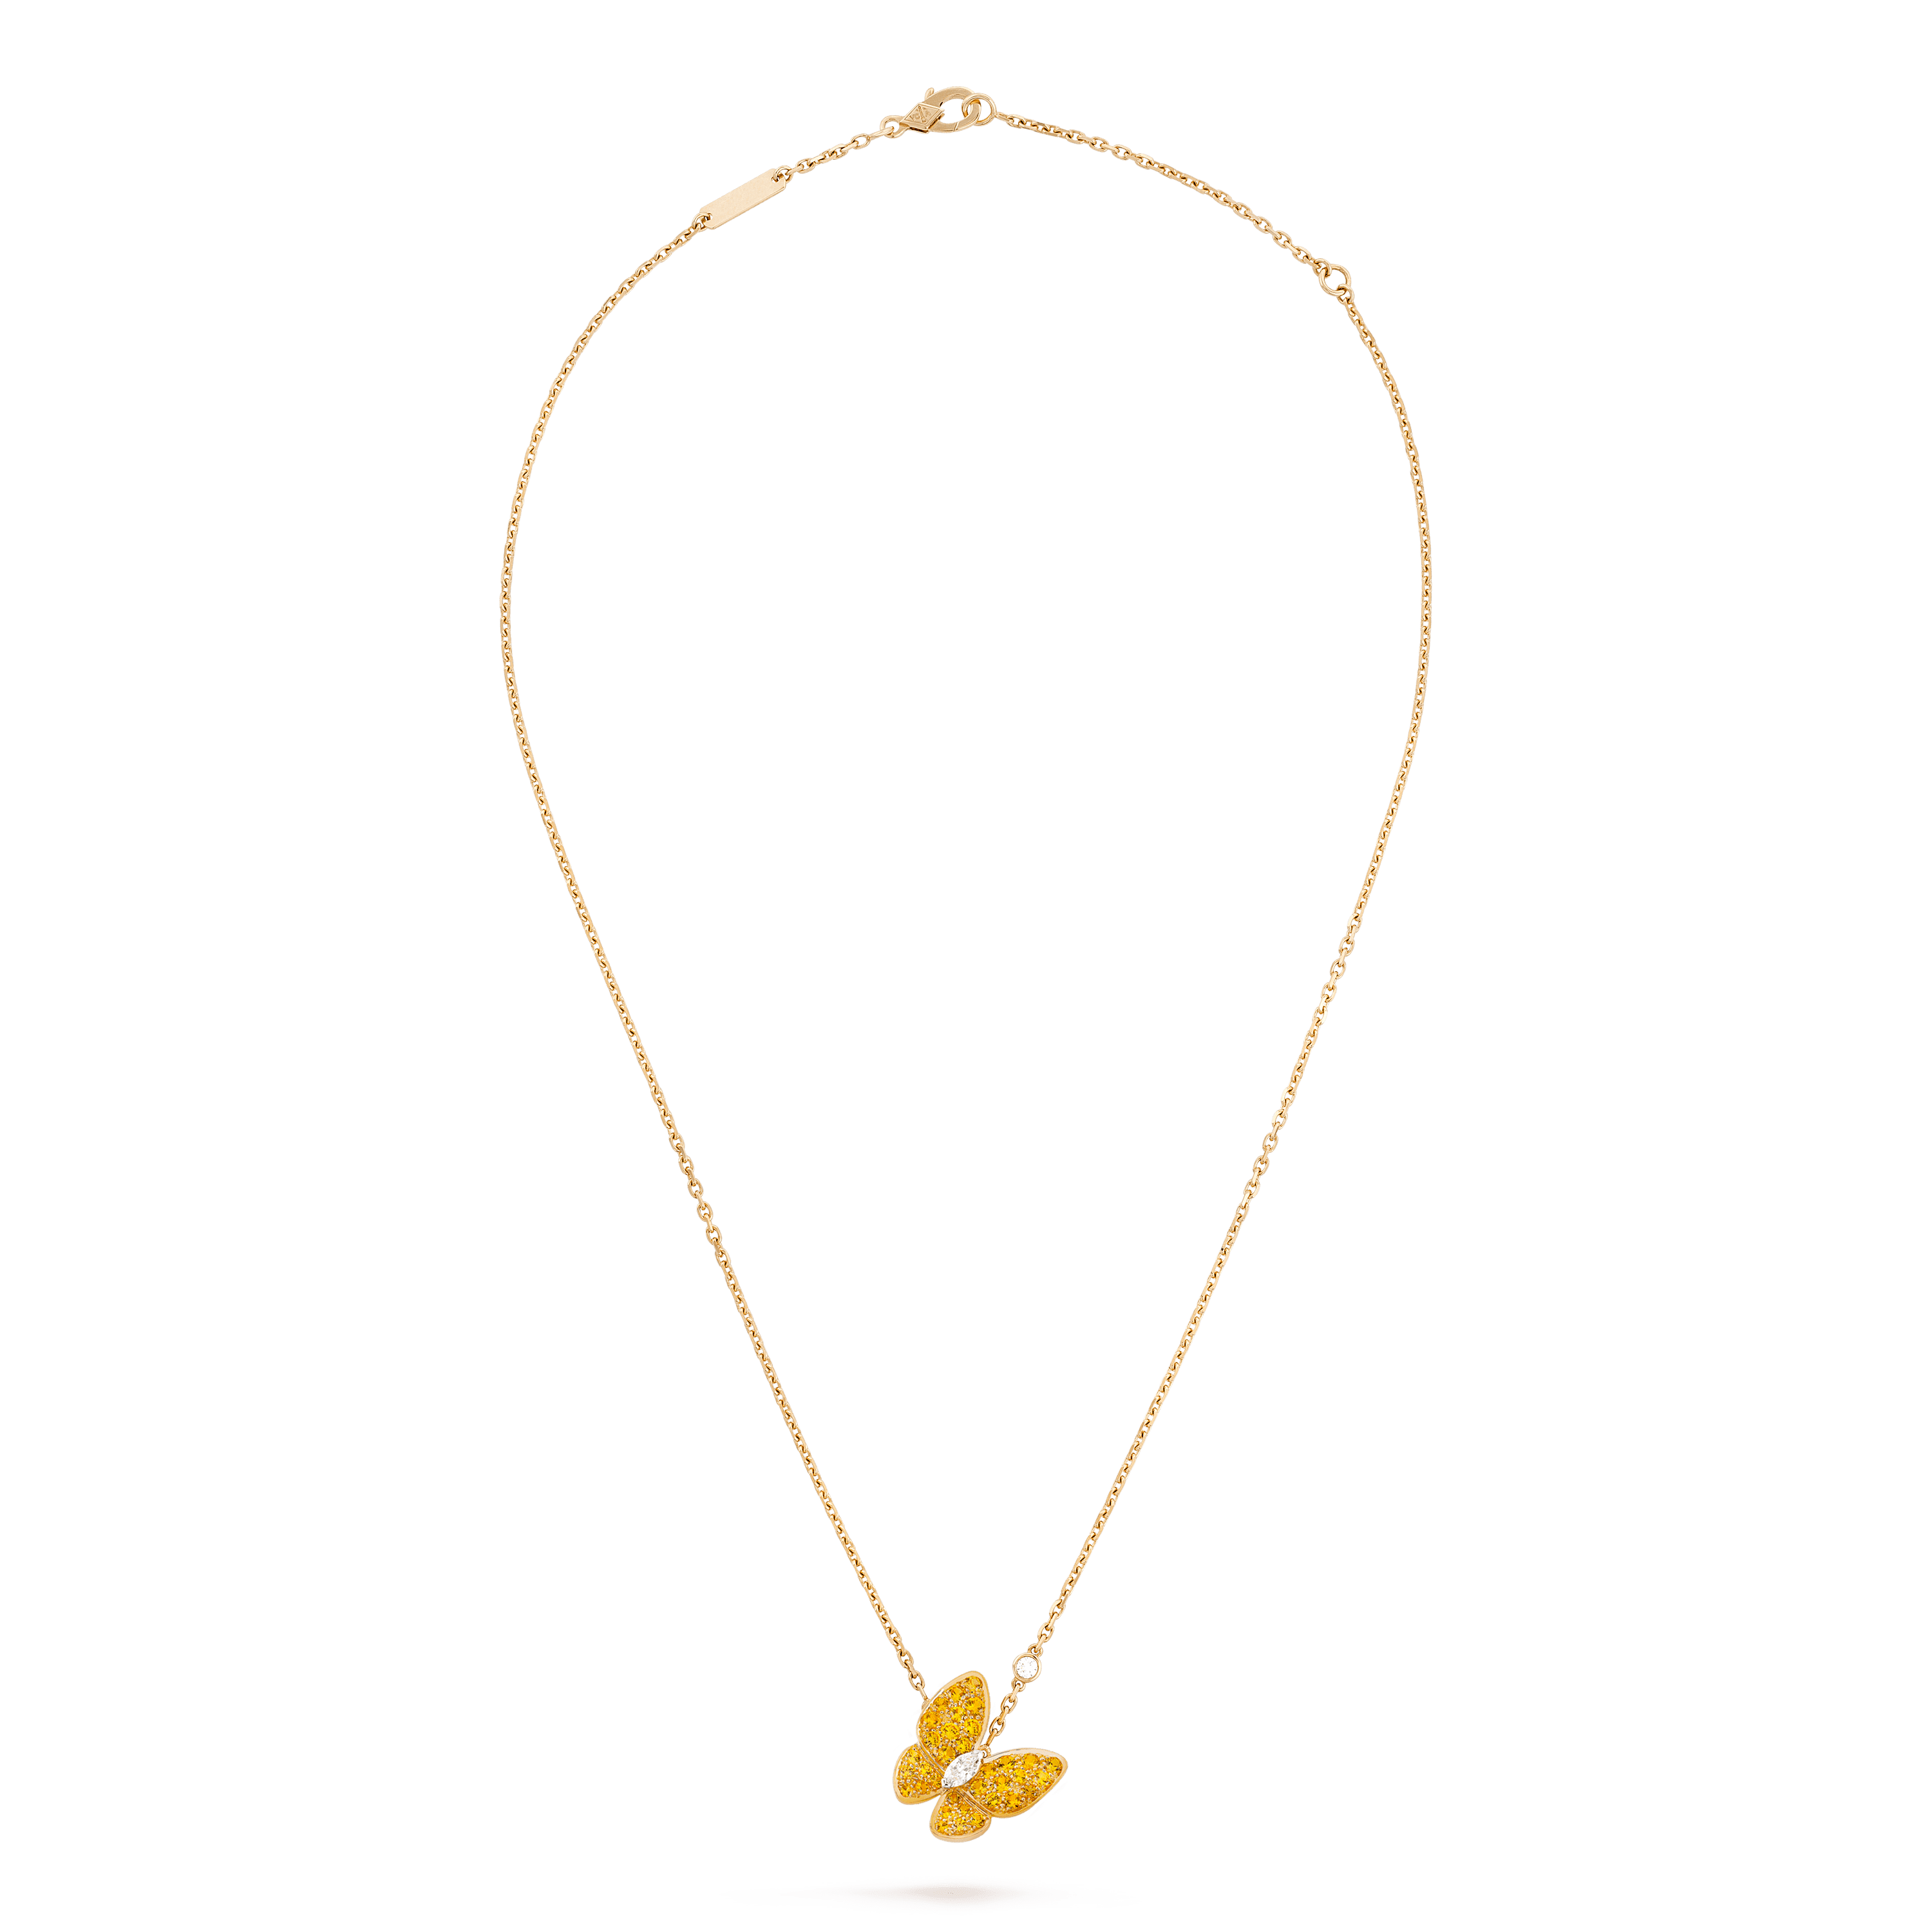 Pingente Two Butterfly, - Front View - VCARO3M300 - Van Cleef & Arpels